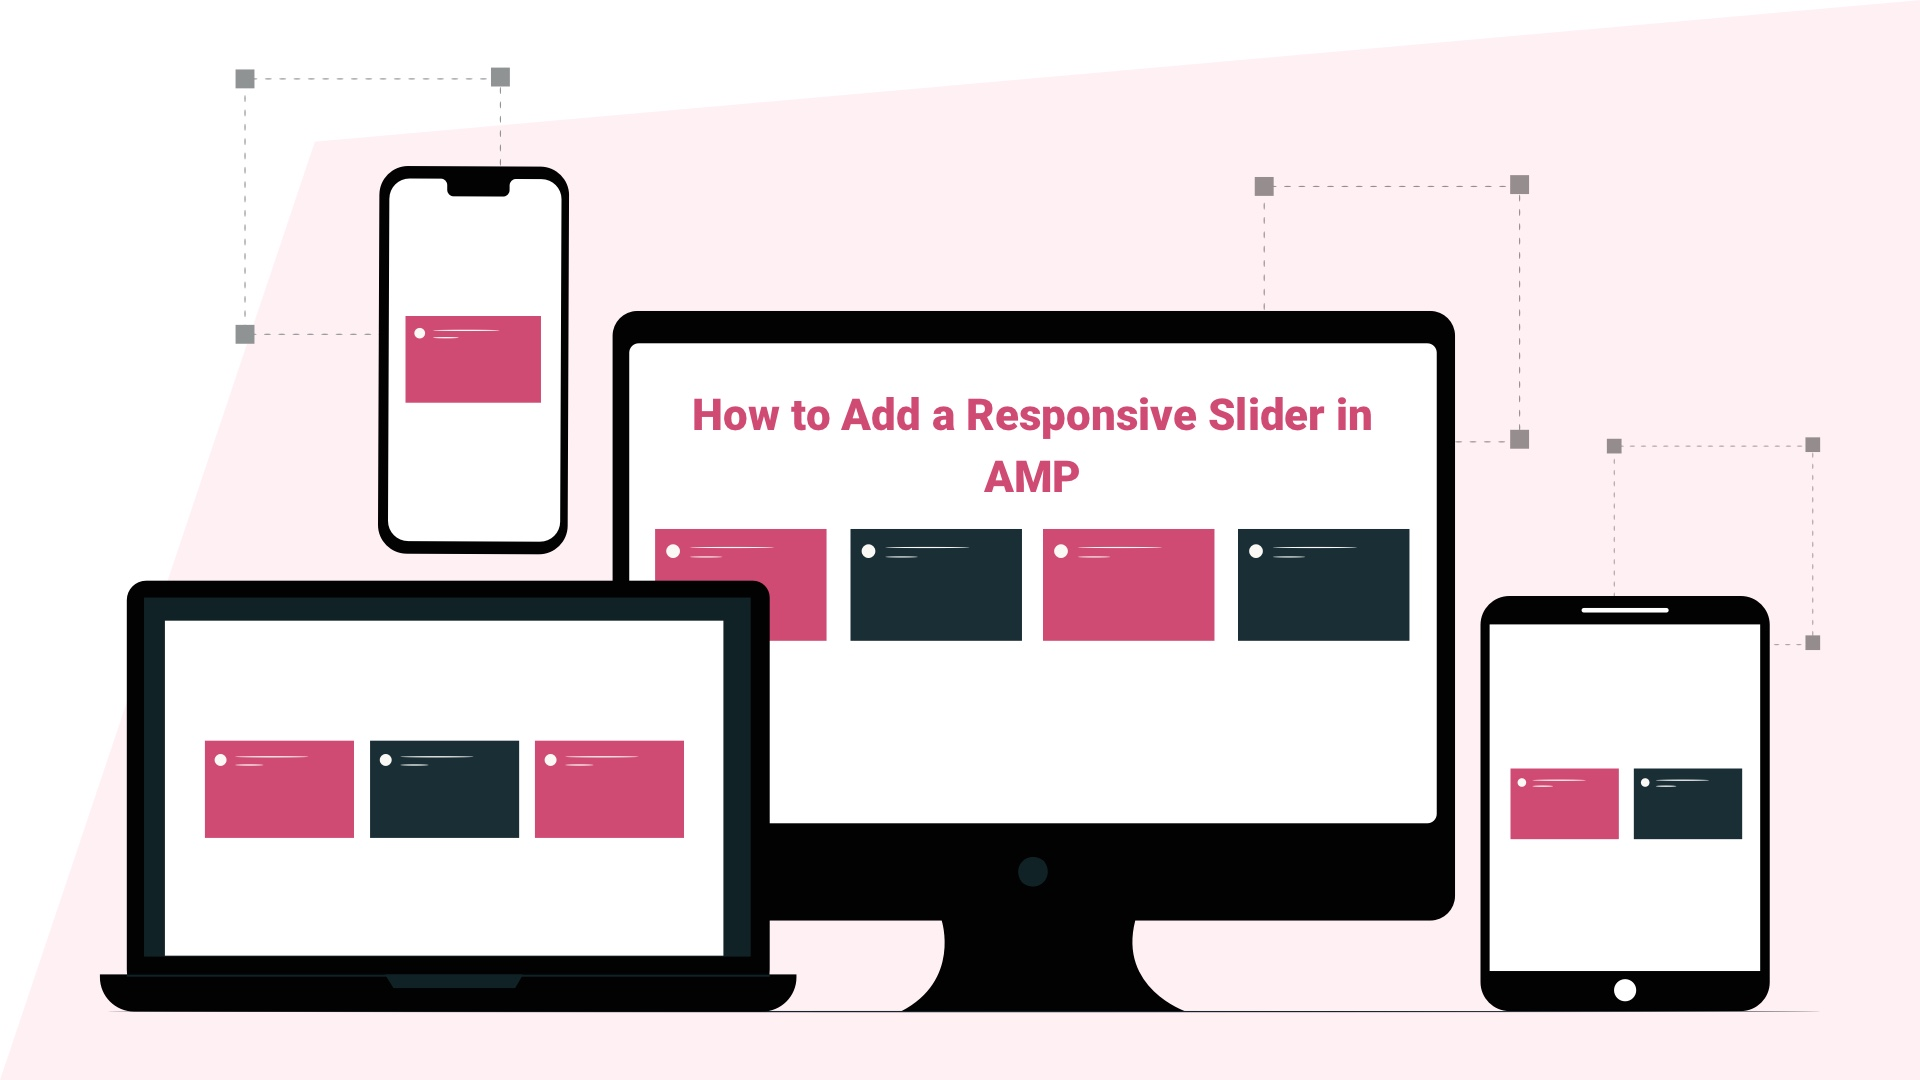 How to Add a Responsive Slider in AMP